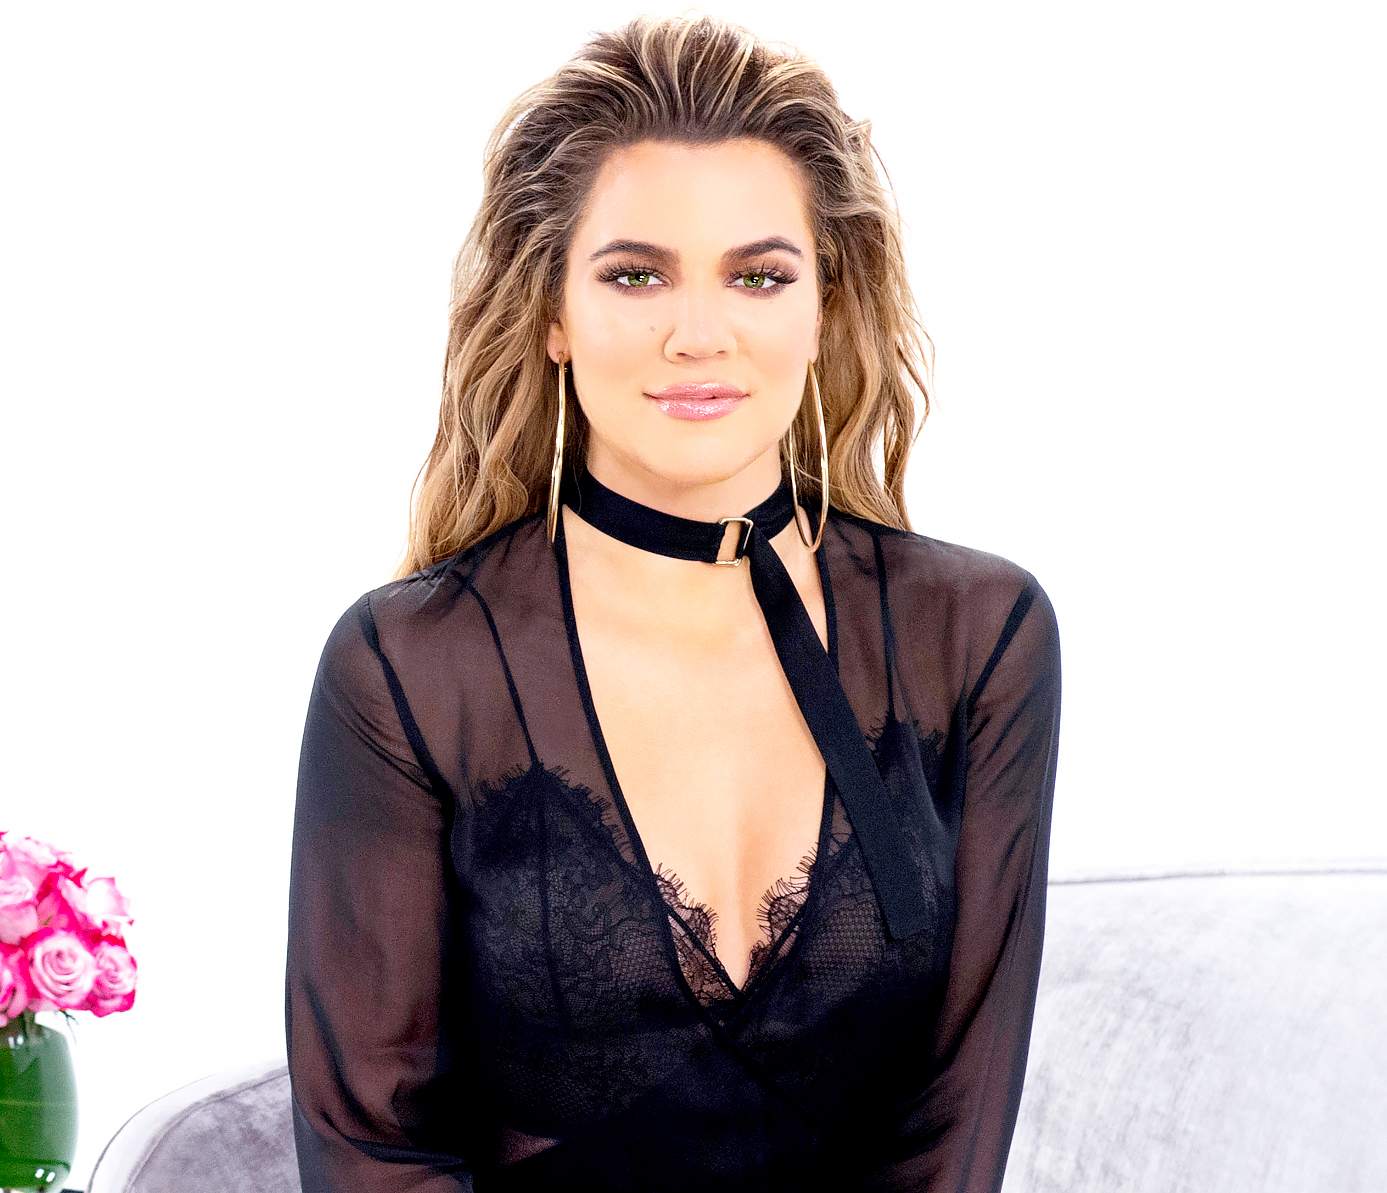 Khloé Kardashian Has Revealed Her Baby Name Plans!